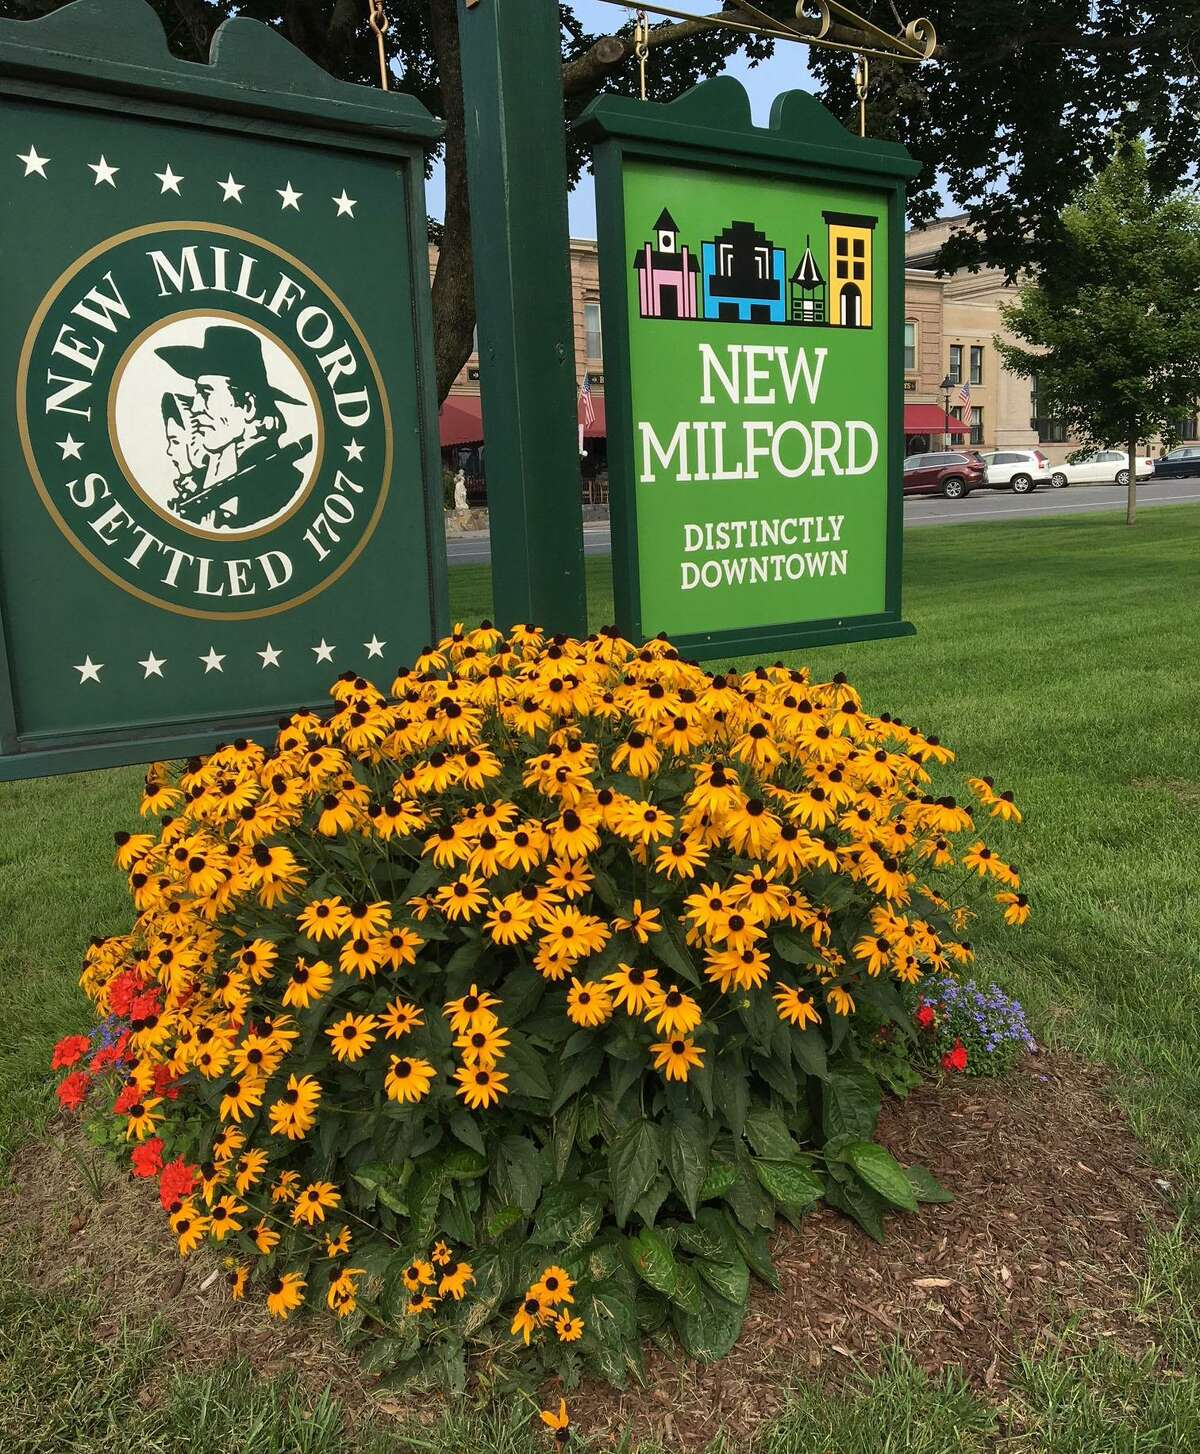 The New Milford Garden Club will celebrate its 95th anniversary with a special gardening show Sept. 15 from 10 a.m. to 3 p.m. The event, which will be held at the John Pettibone Community Center at 2 Pickett District Road, will feature displays, lectures, floral designs, activities for children, door prizes and refreshments. Admission is free. The club has planned, planted and cared for numerous landscaping projects and gardens throughout town, including this one at the south end of the Village Green.